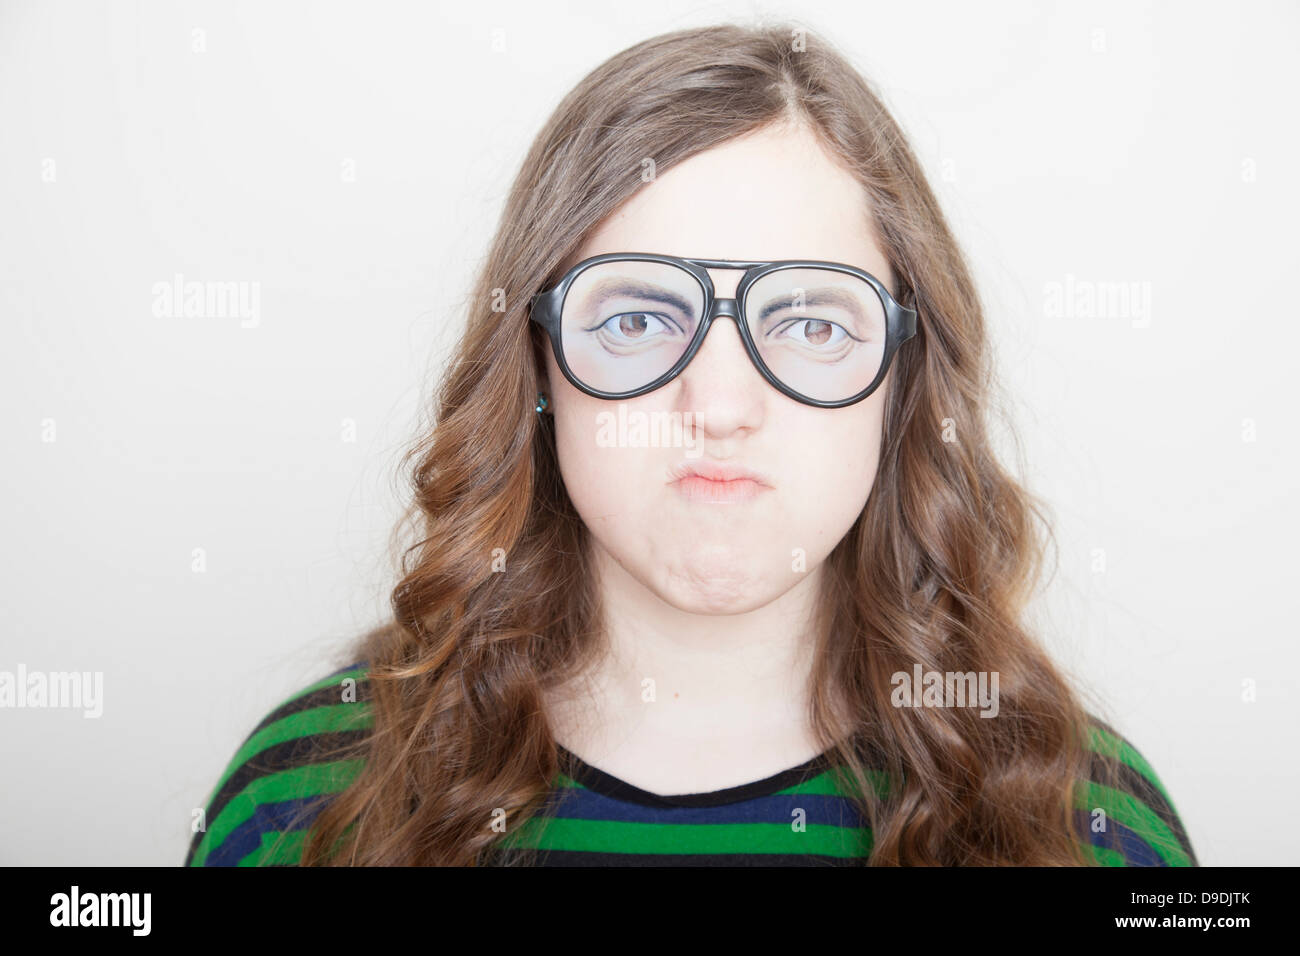 Girl wearing fake glasses - Stock Image